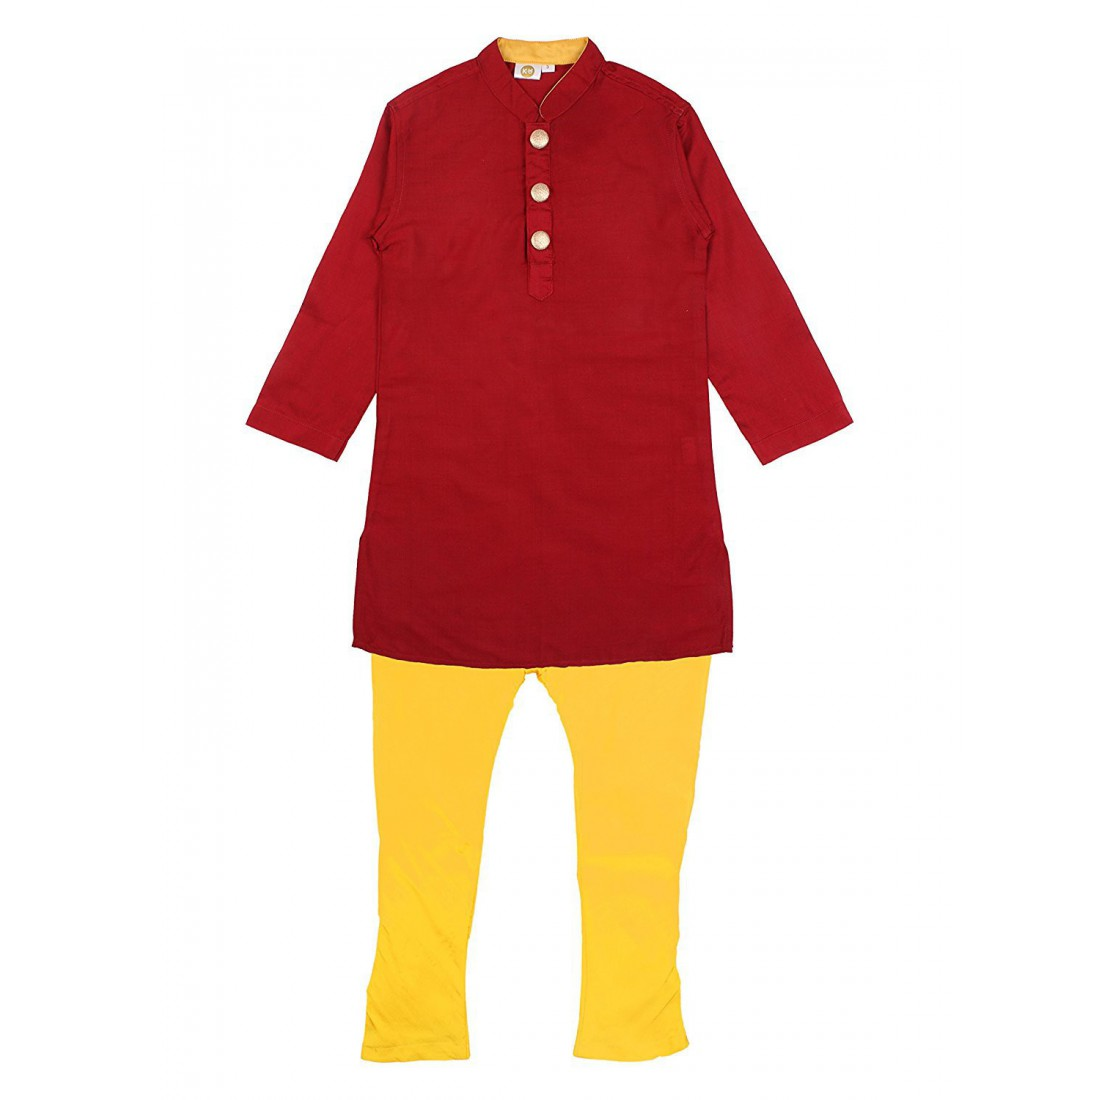 K&U Boys' Regular Fit Silk Kurta Pyjama - Maroon, Gold